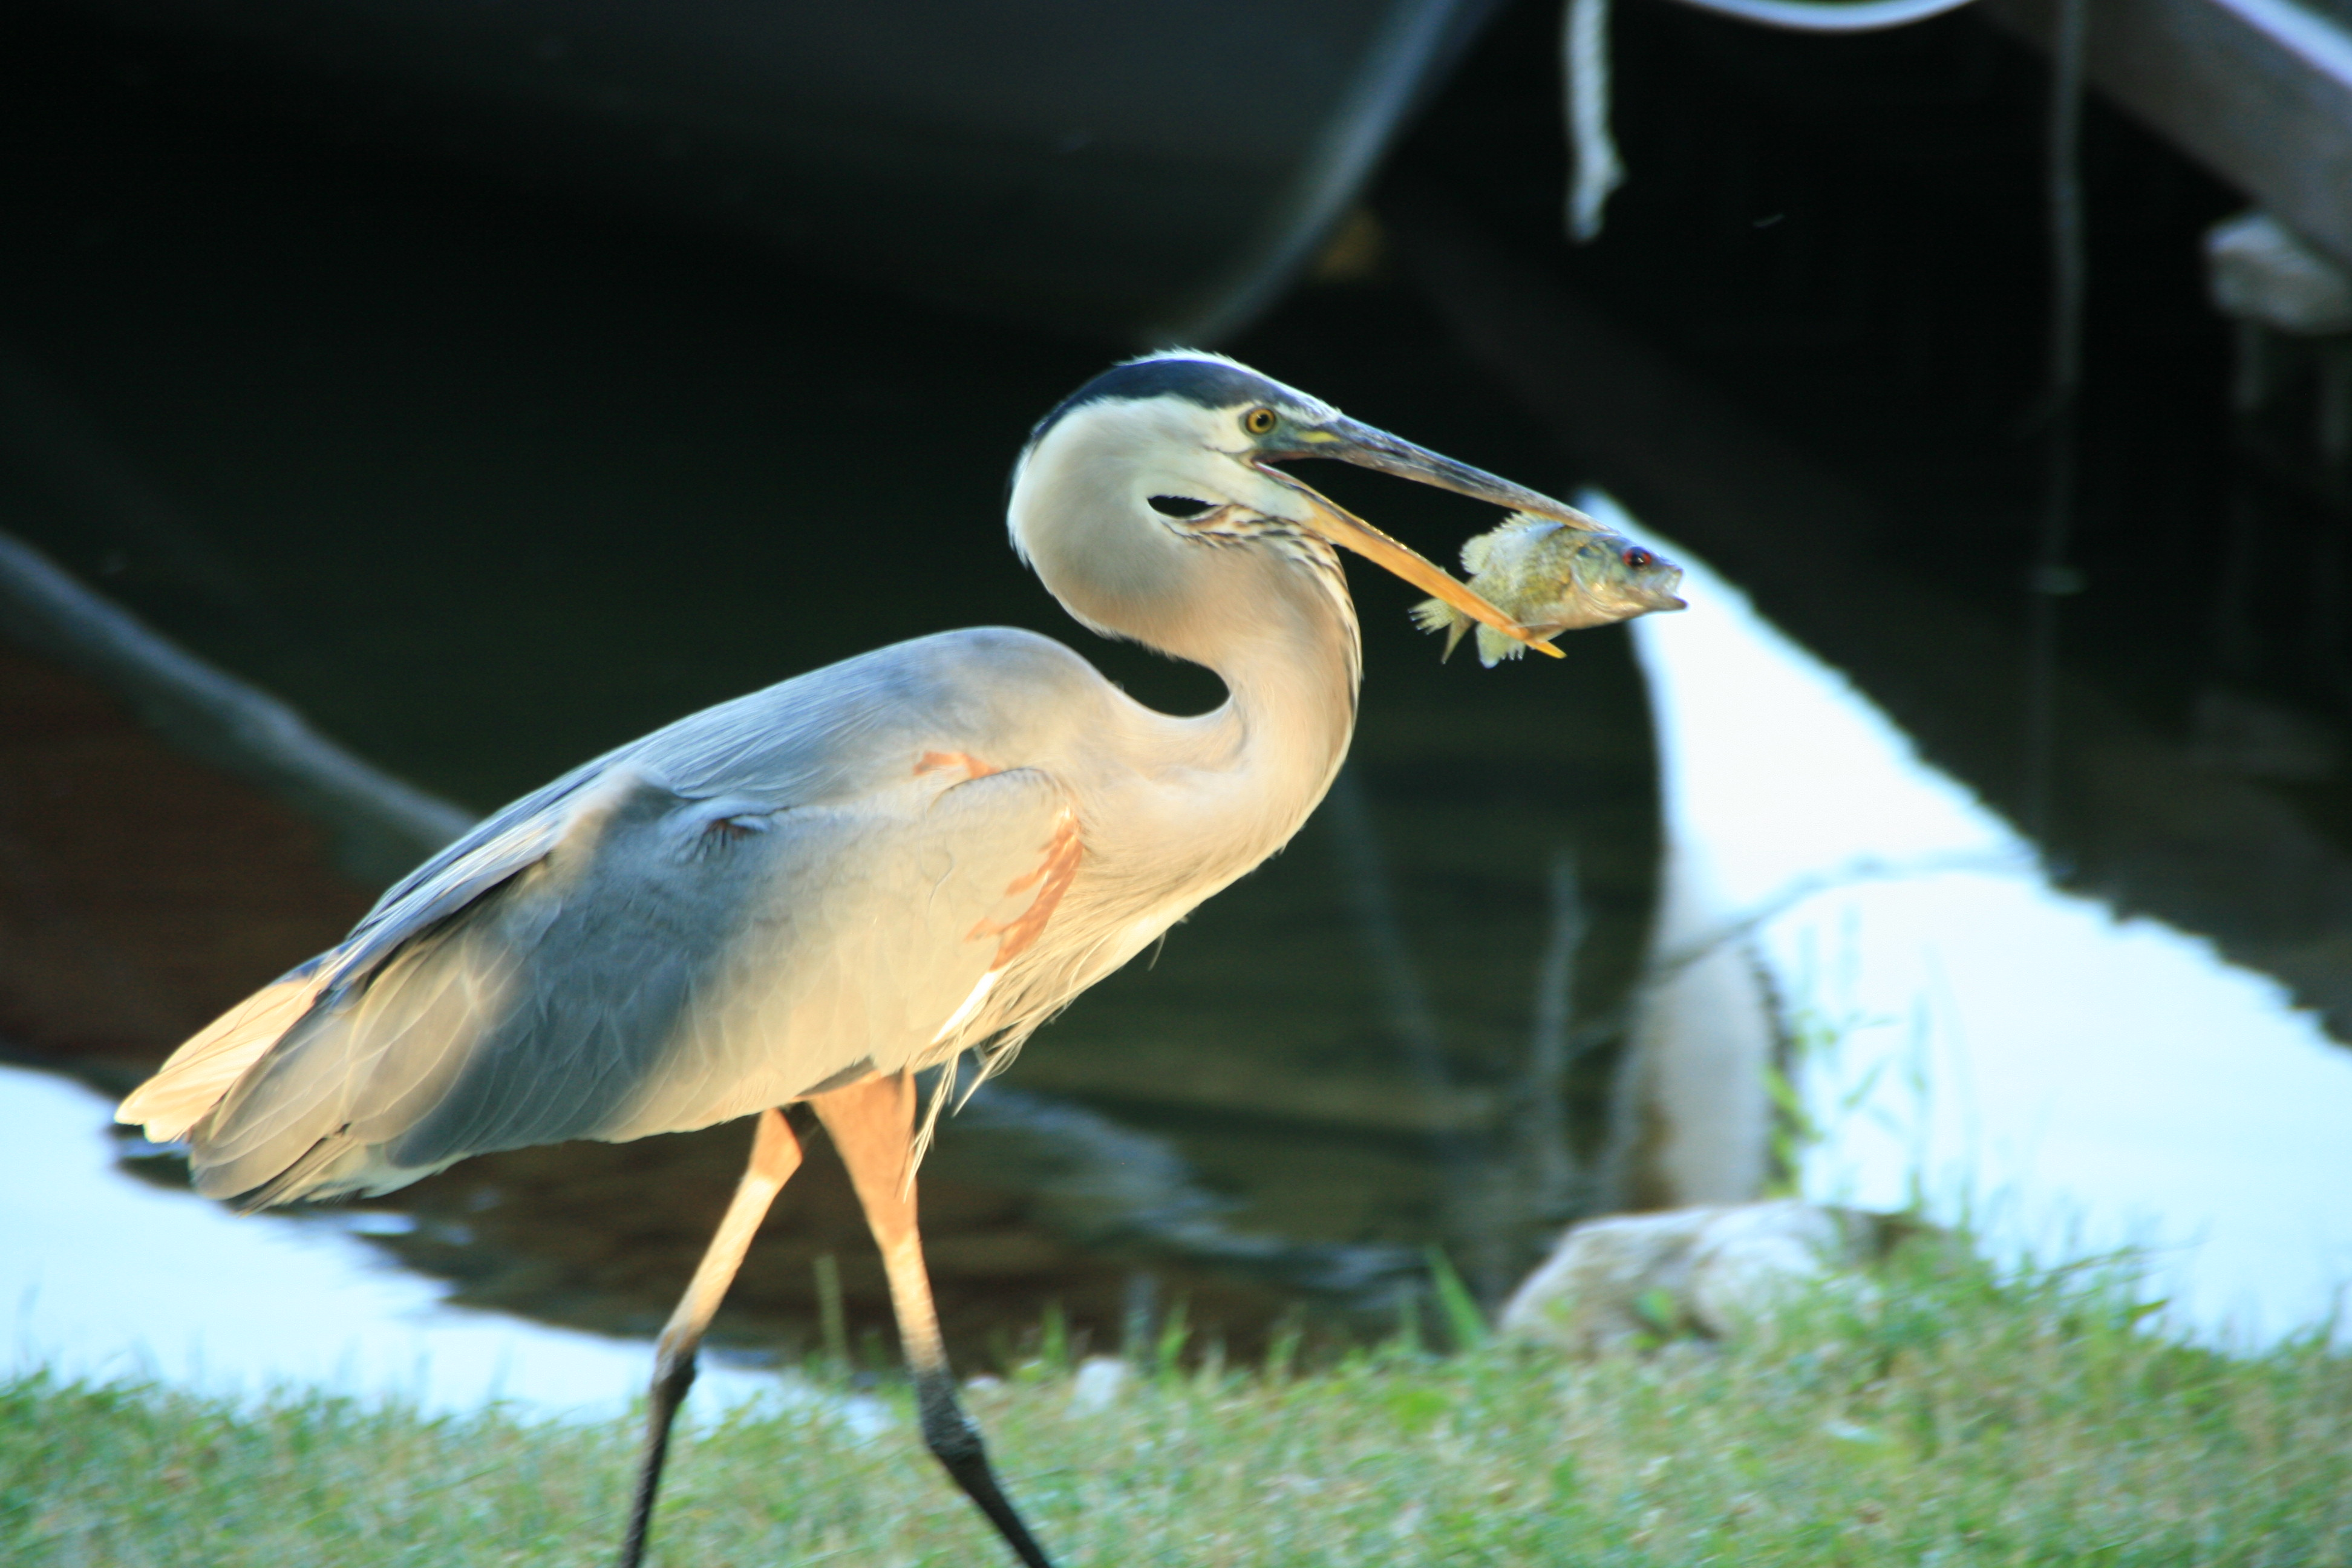 Heron with Lunch